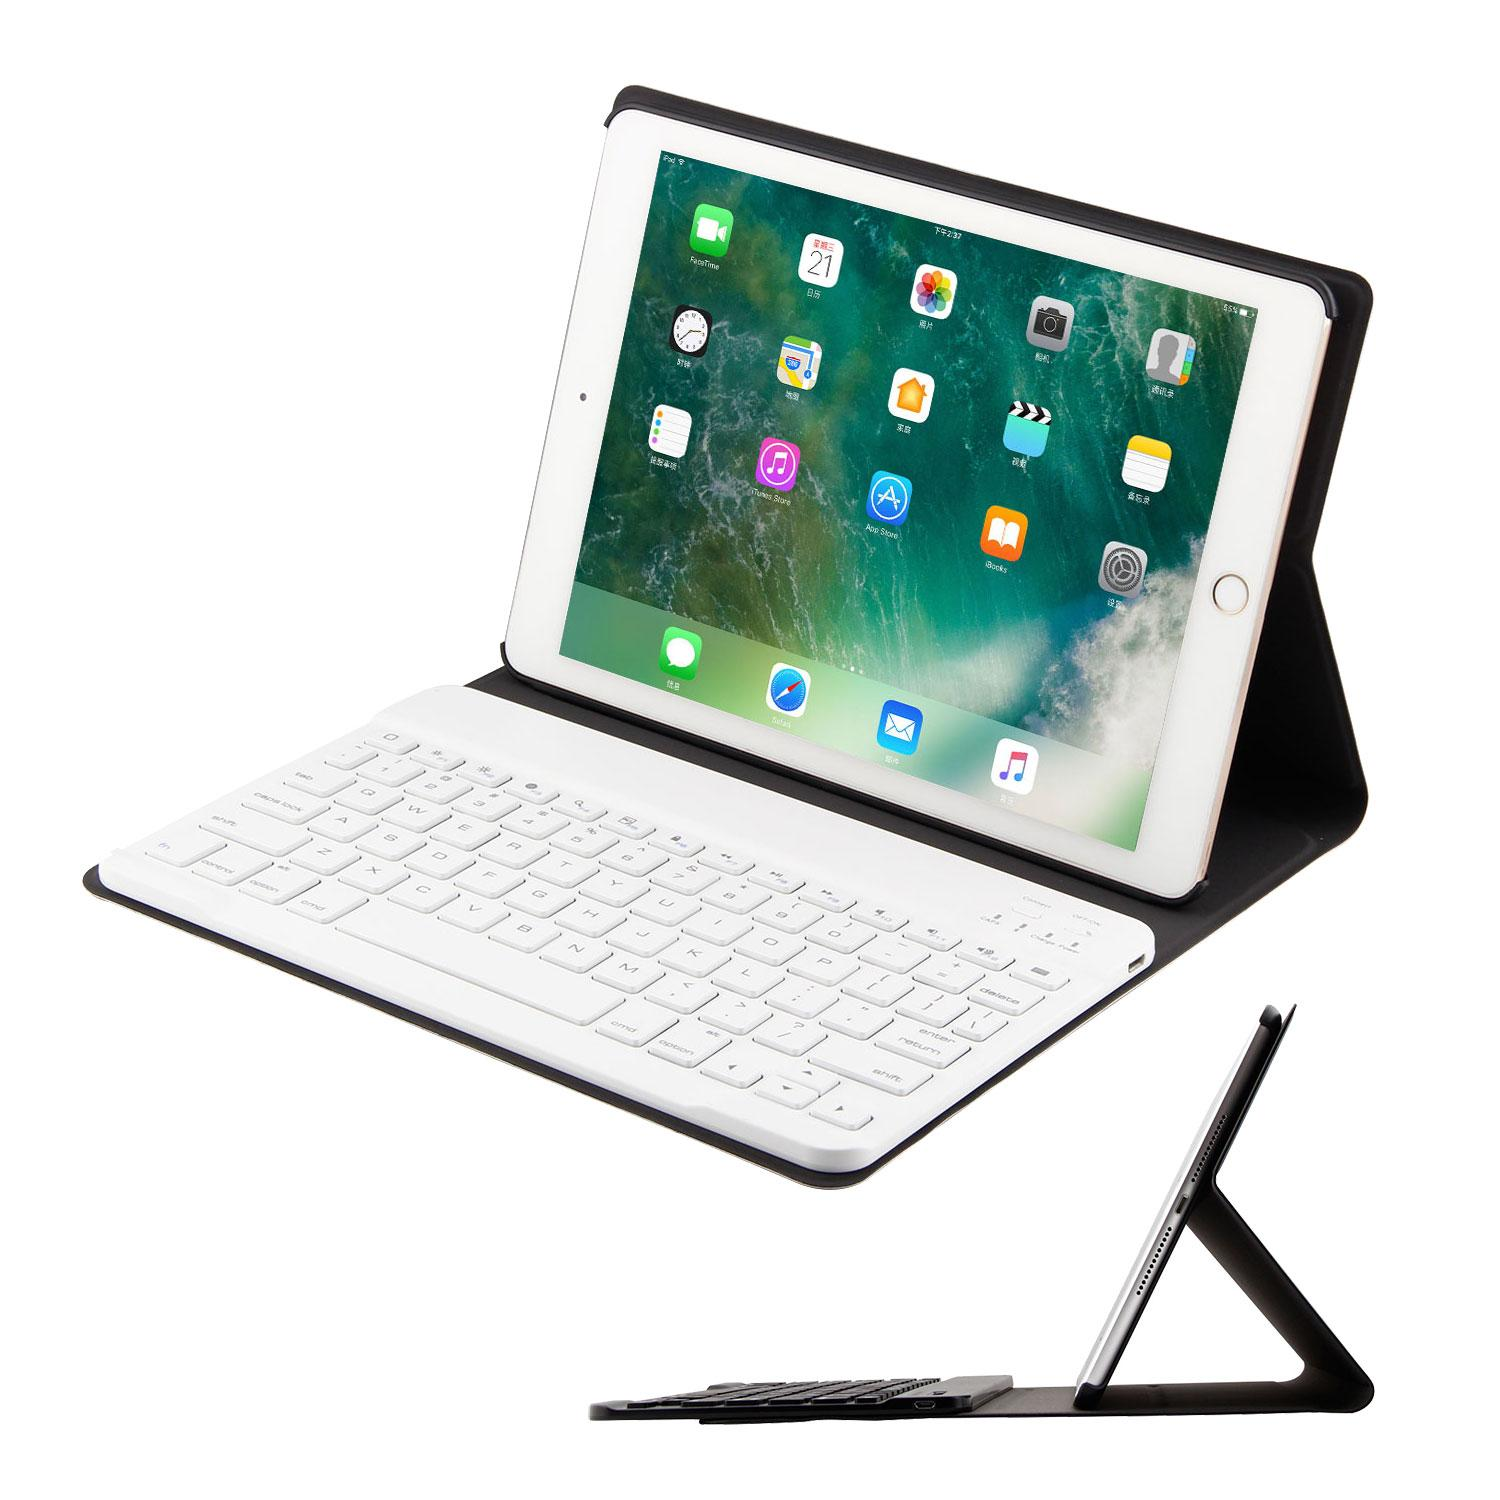 leegoal 2 In 1 Bluetooth Keyboard Foldable Protective Case Stand For IPad Air/iPad Air2/ IPad Pro 9.7/ IPad 9.7 2017